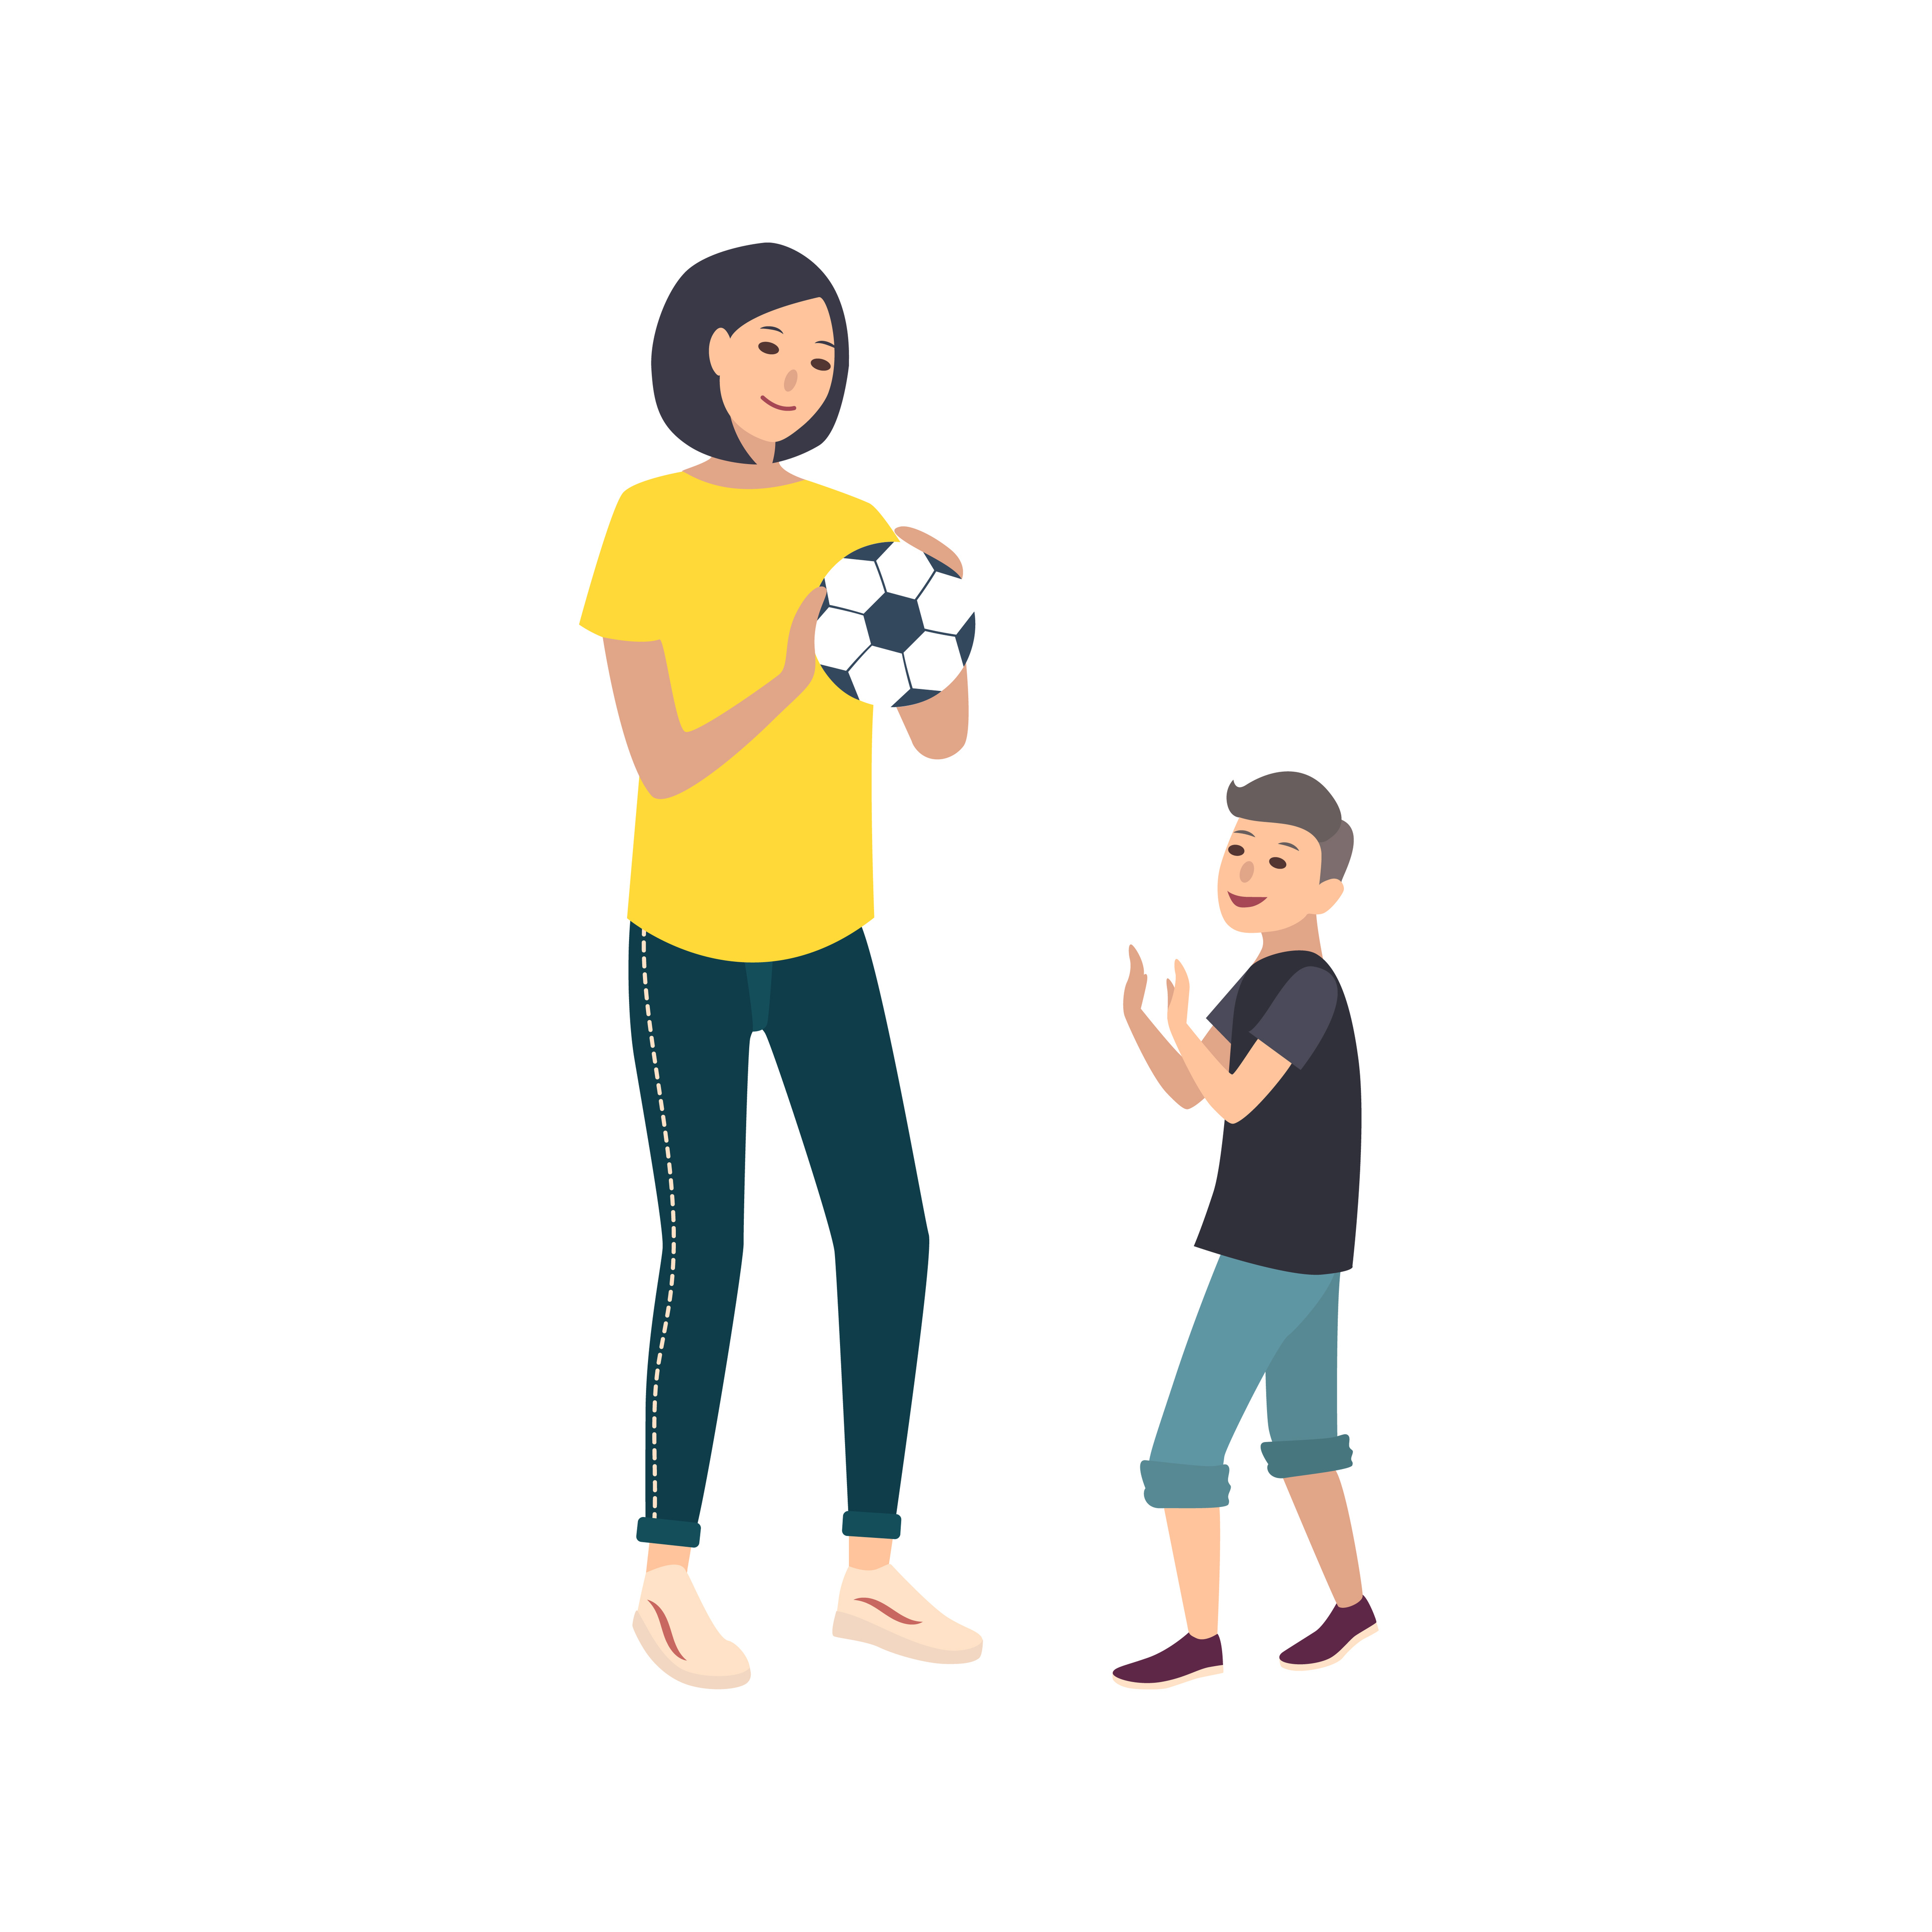 Illustration of a mother and child holding a soccer ball and smiling.